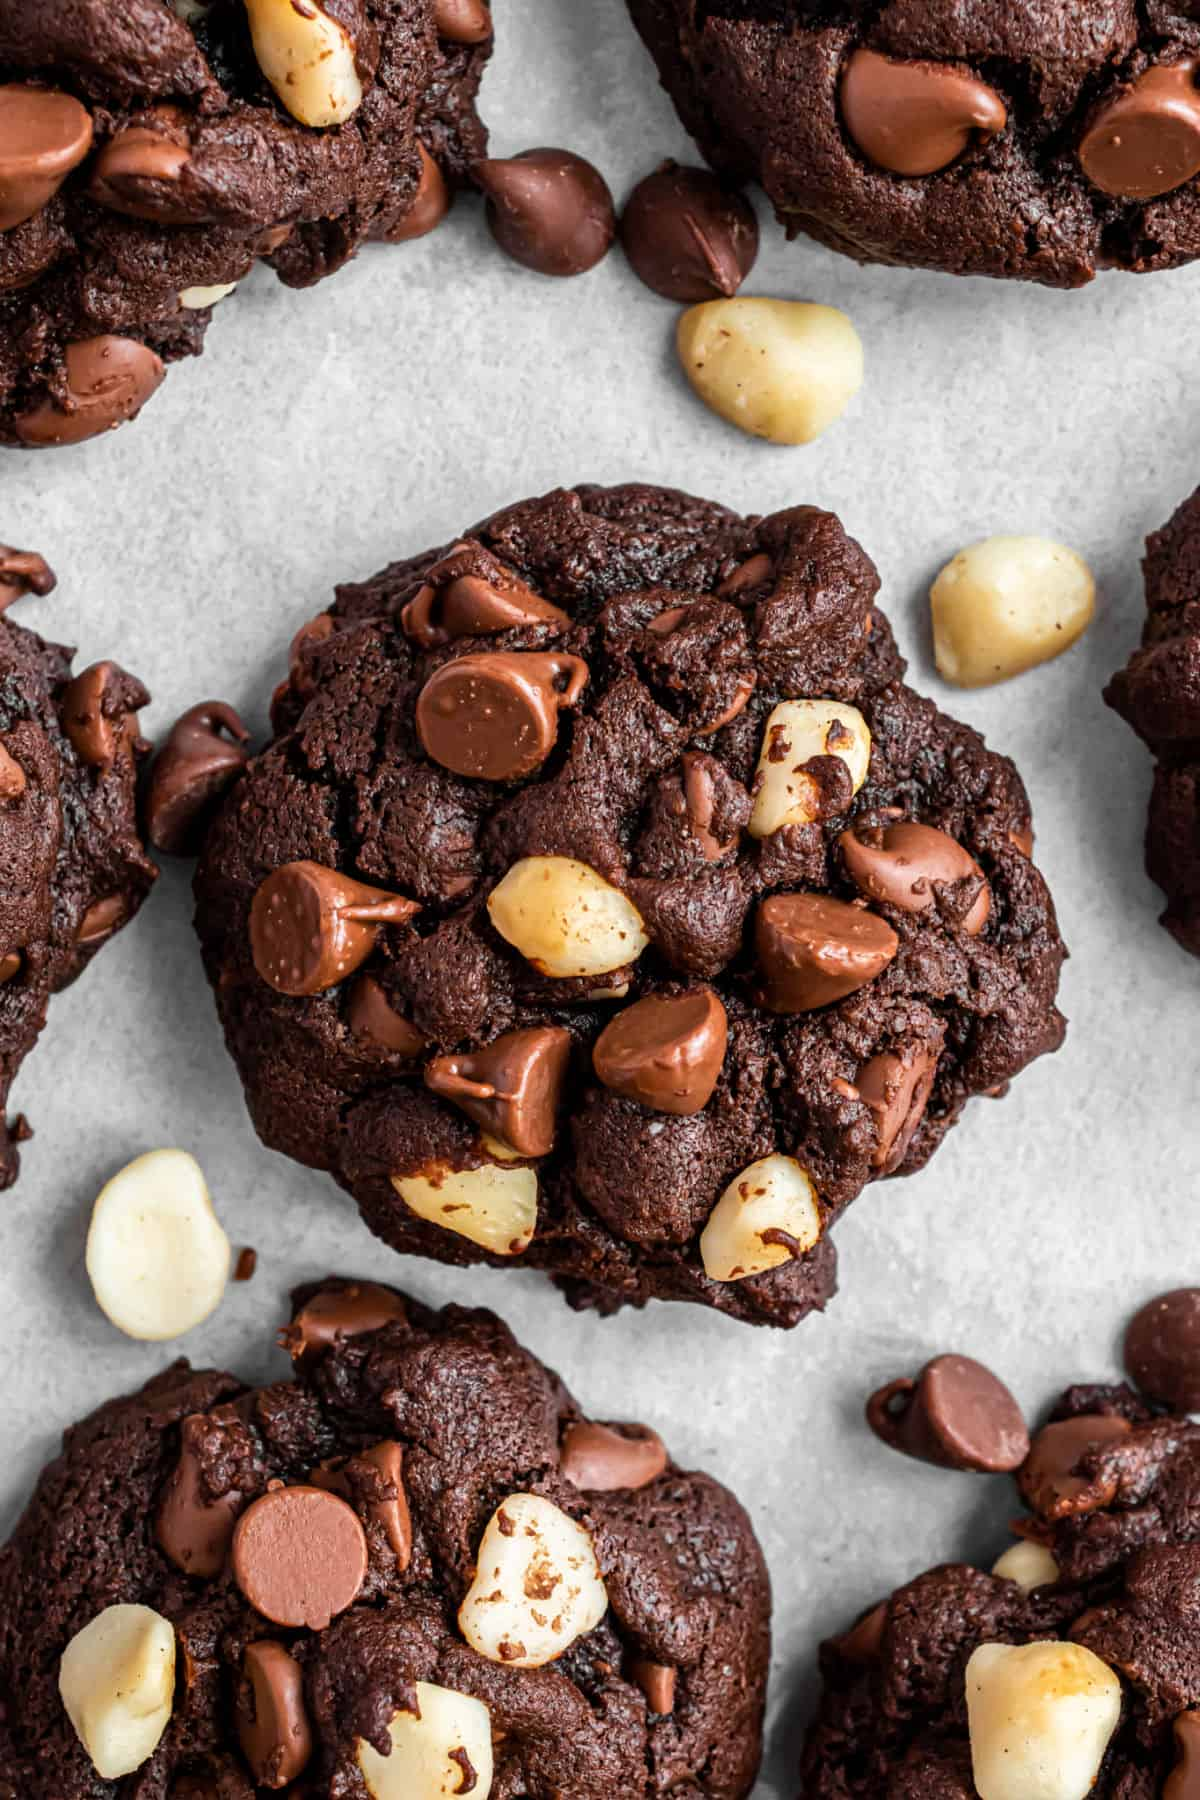 Chocolate macadamia nut cookies on a parchment paper lined cookie sheet.